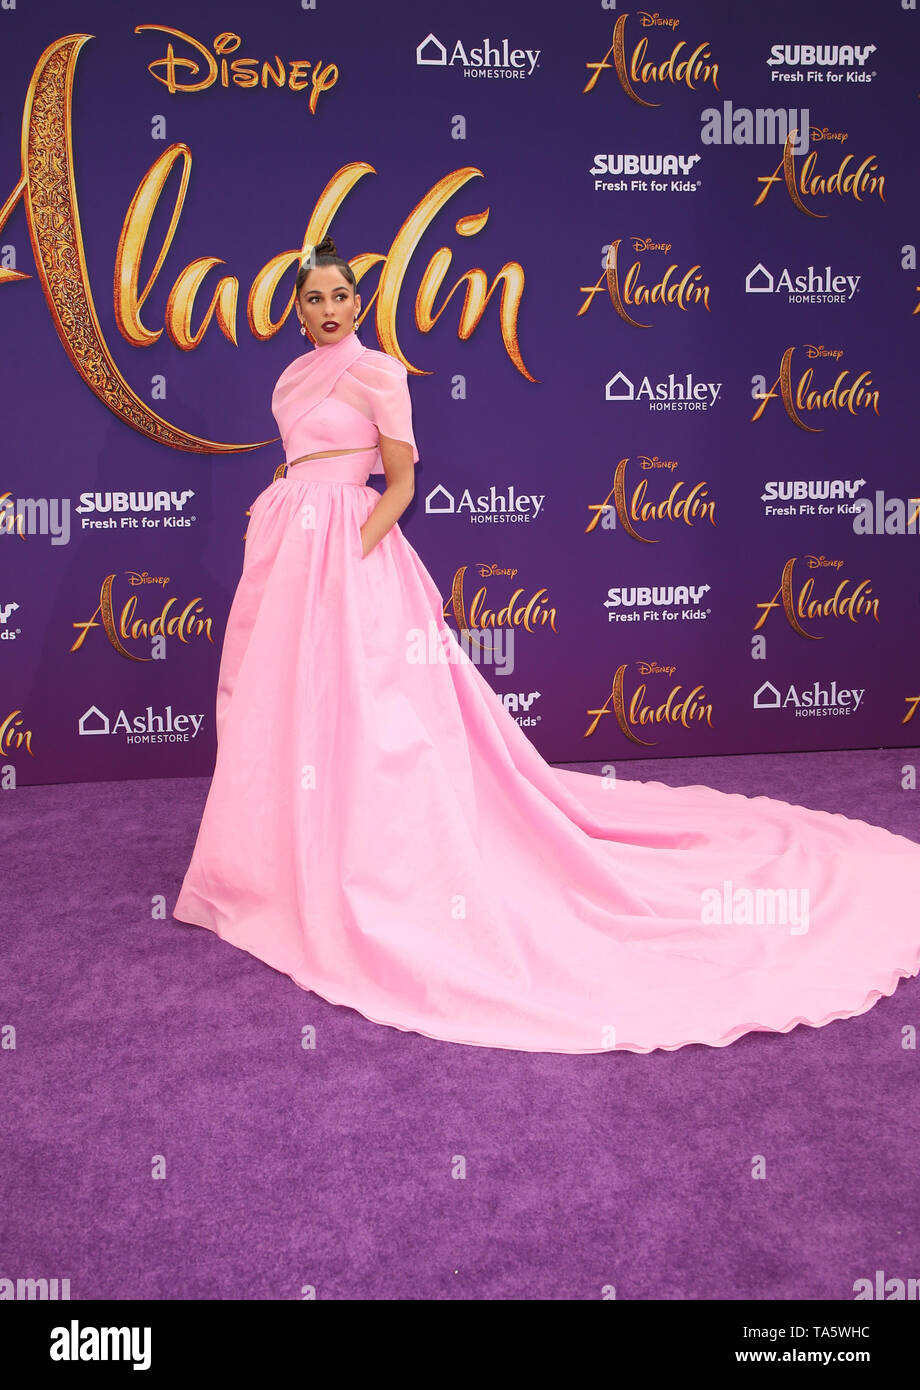 Hollywood, Ca. 21st May, 2019. Naomi Scott, at the World Premiere of Disney's Aladdin at El Capitan theatre on May 21, 2019 in Hollywood., California on May 21, 2019. Credit: Faye Sadou/Media Punch/Alamy Live News - Stock Image